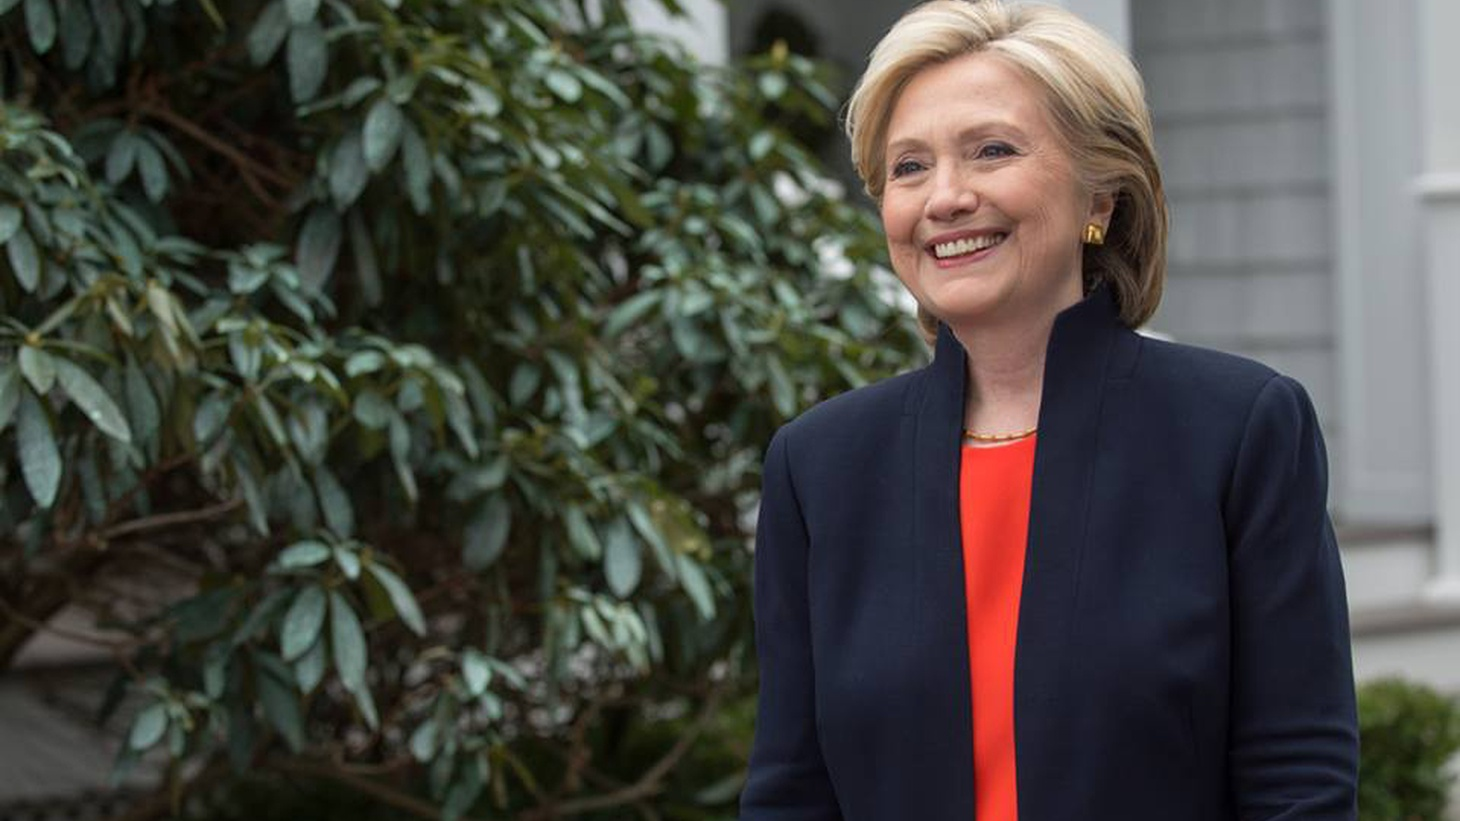 """Hillary Clinton's second announcement for President is a low-key contrast to what's described as her """"alpha-male style"""" the first time around. But she's still one of the world's most famous people, hoping to raise a billion dollars between now and November of next year. We see how it looks at the beginning."""